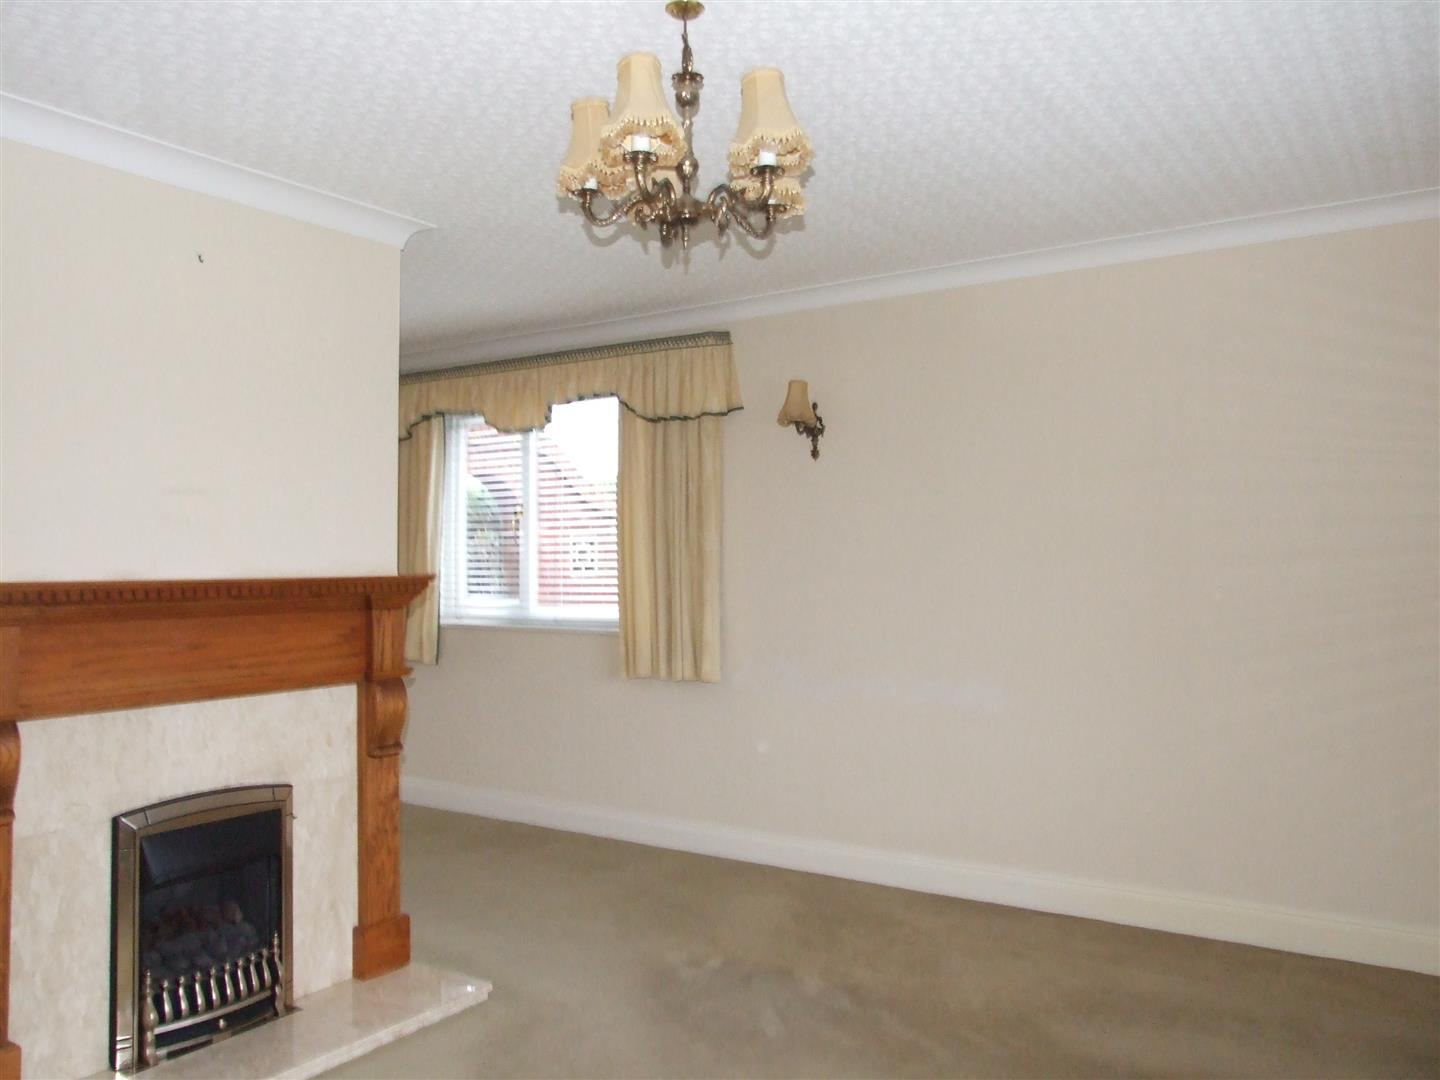 2 bed detached bungalow to rent in Long Sutton Spalding, PE12 9BS 2